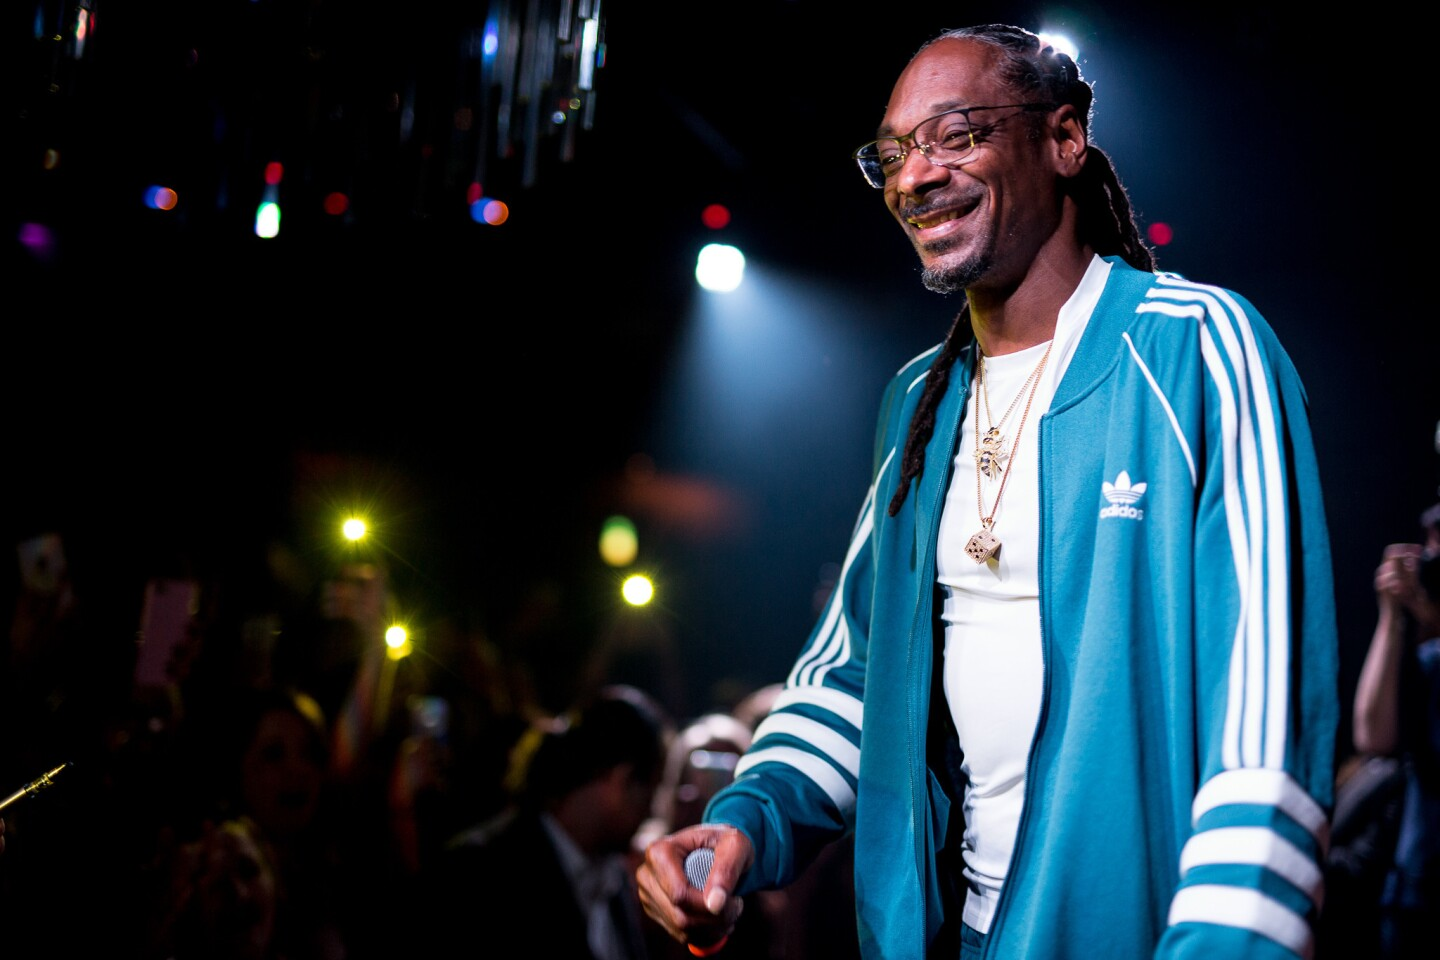 Legendary rapper Snoop Dogg entertained the crowd and posed with fans when he made an appearance at Oxford Social Club on Sunday, Sept. 2, 2018.